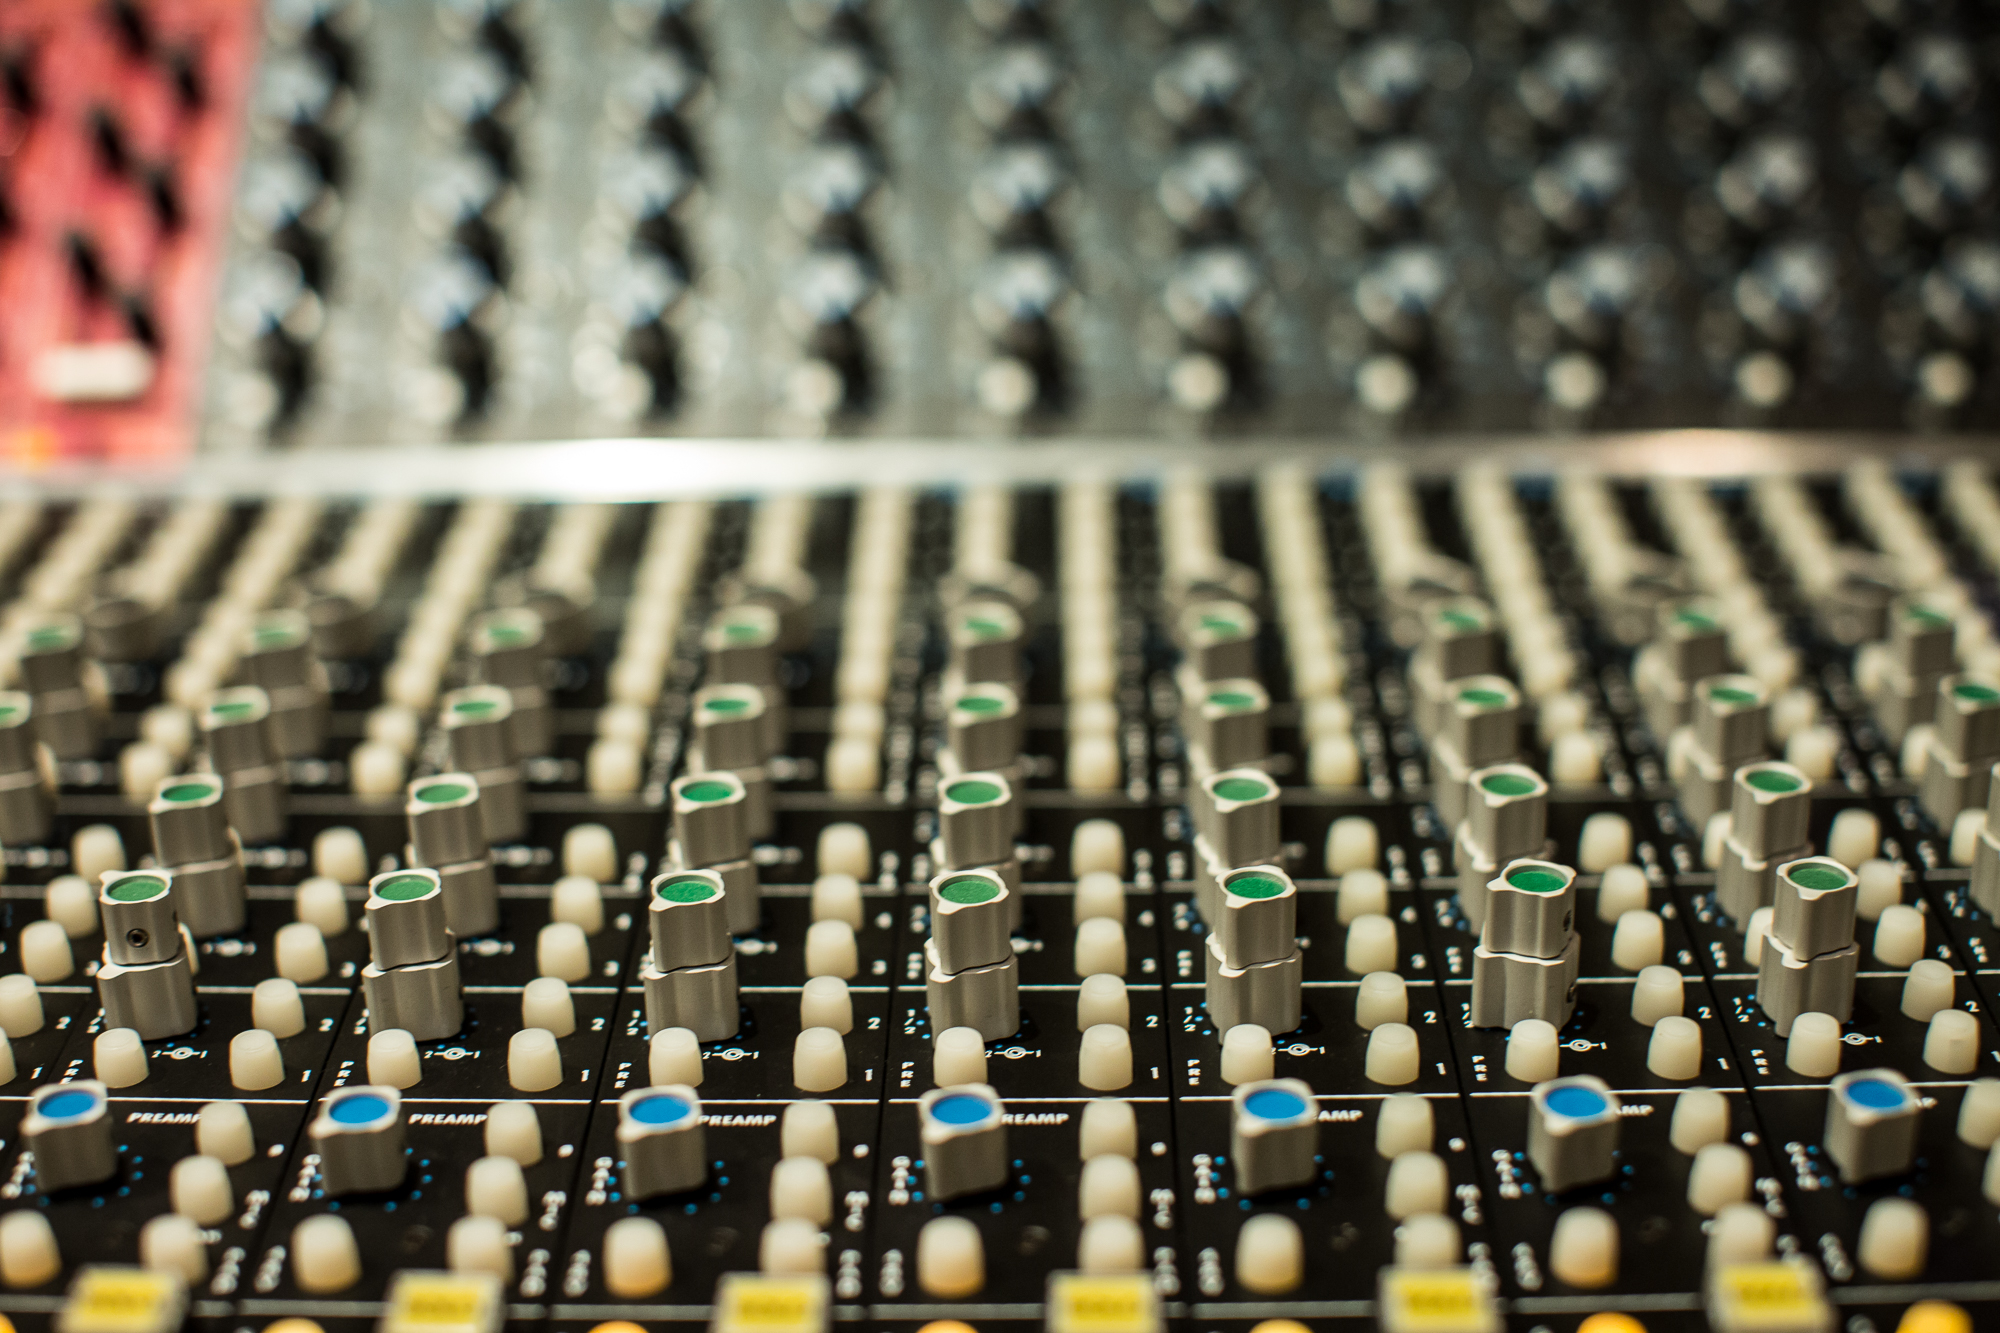 What to look out for in a recording studio